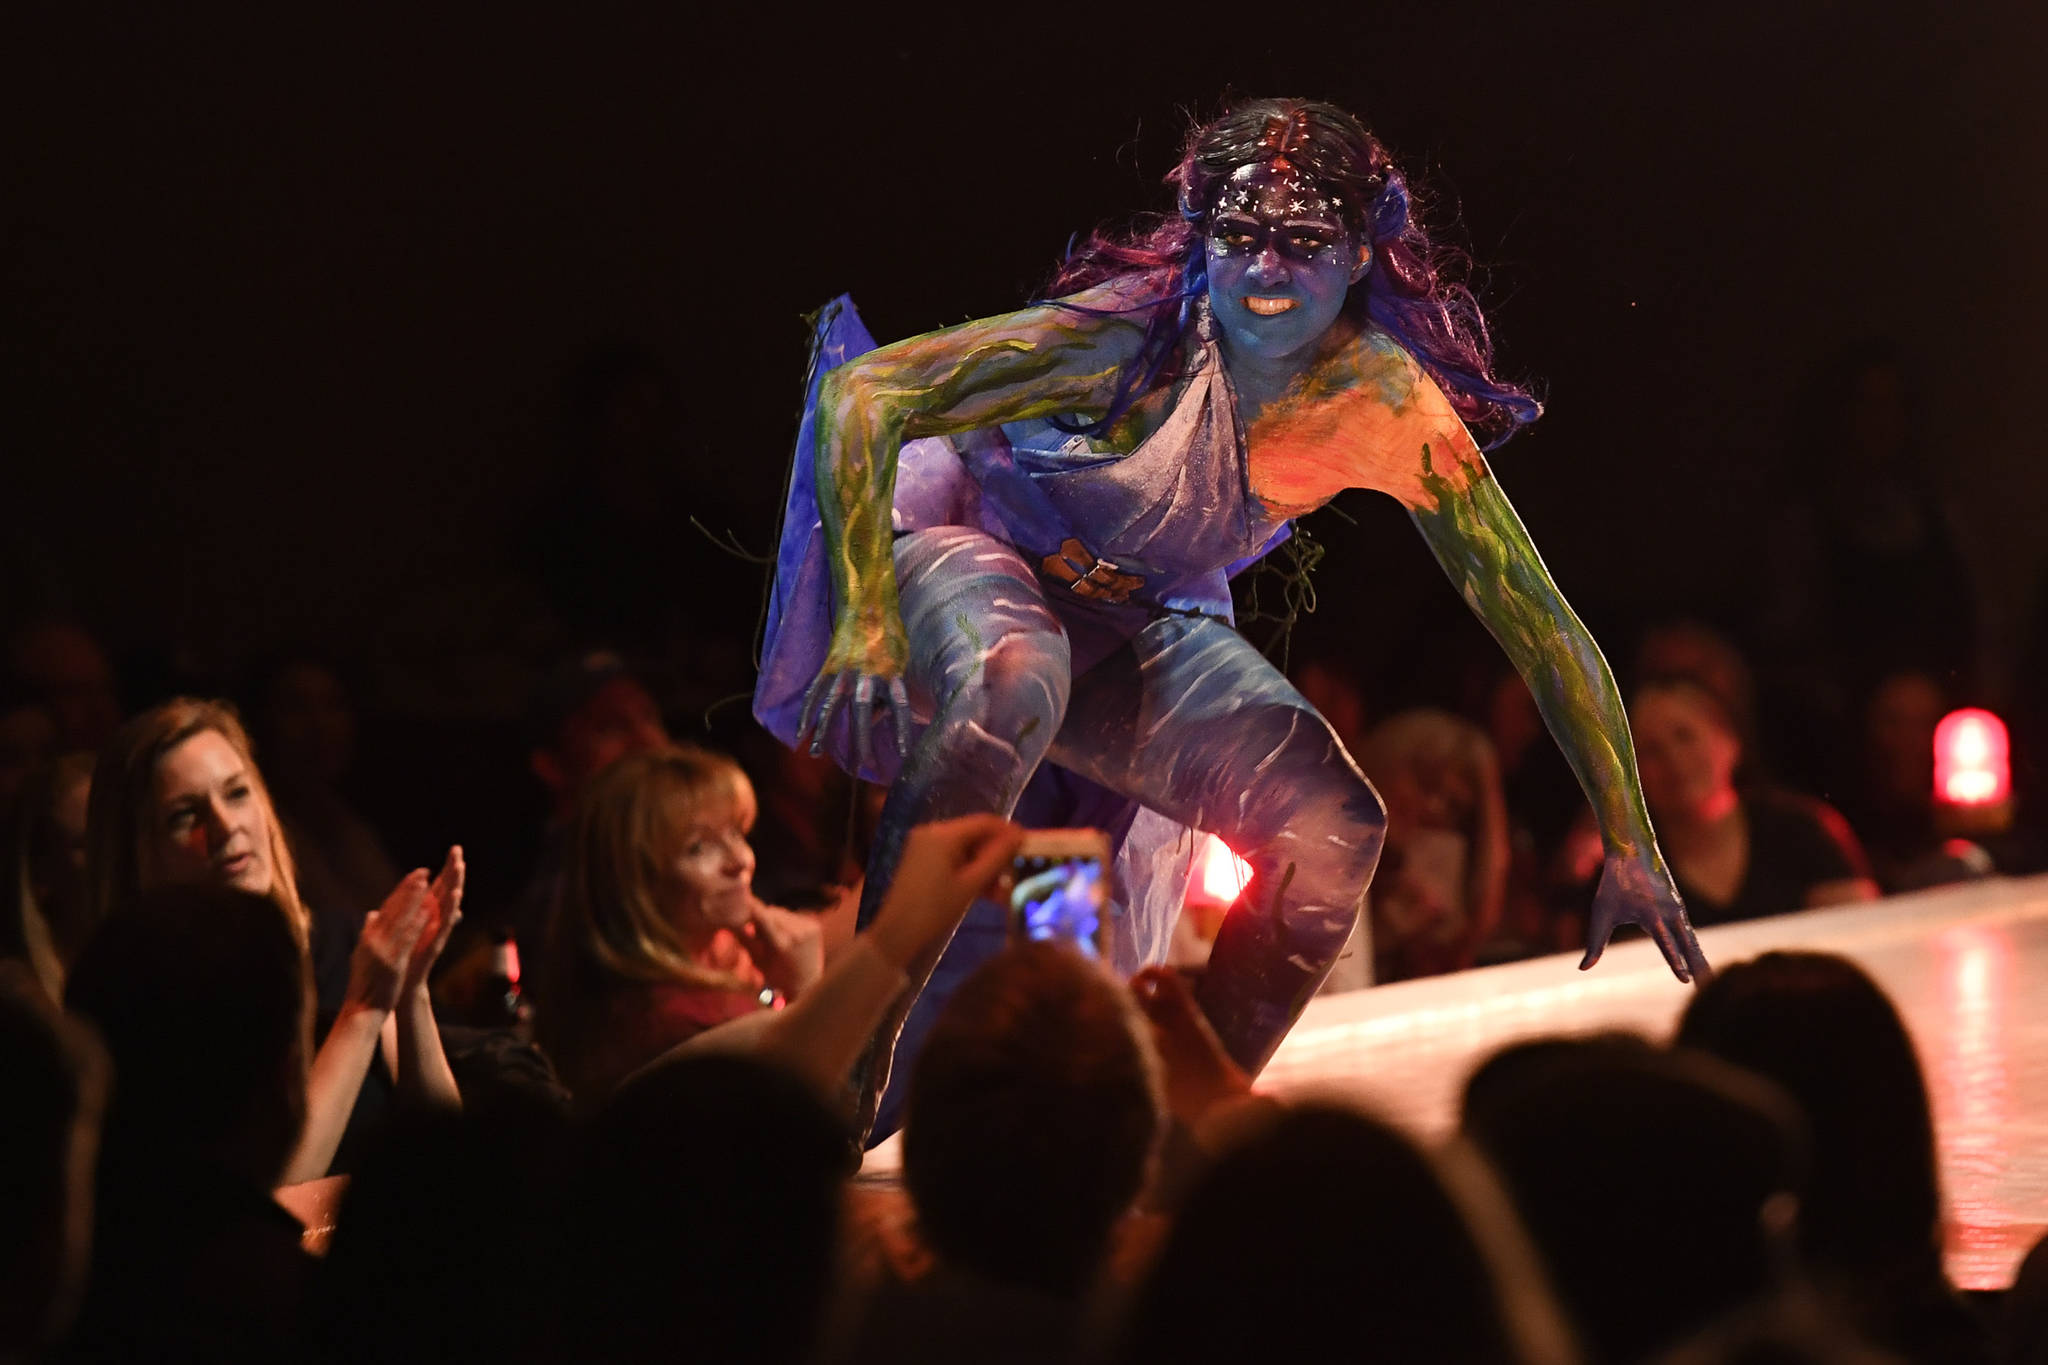 """Clare Boily bring her and Hal Turman's """"The Siren"""" to life at the Wearable Art show at Centennial Hall on Saturday, Feb. 16, 2019. (Michael Penn 